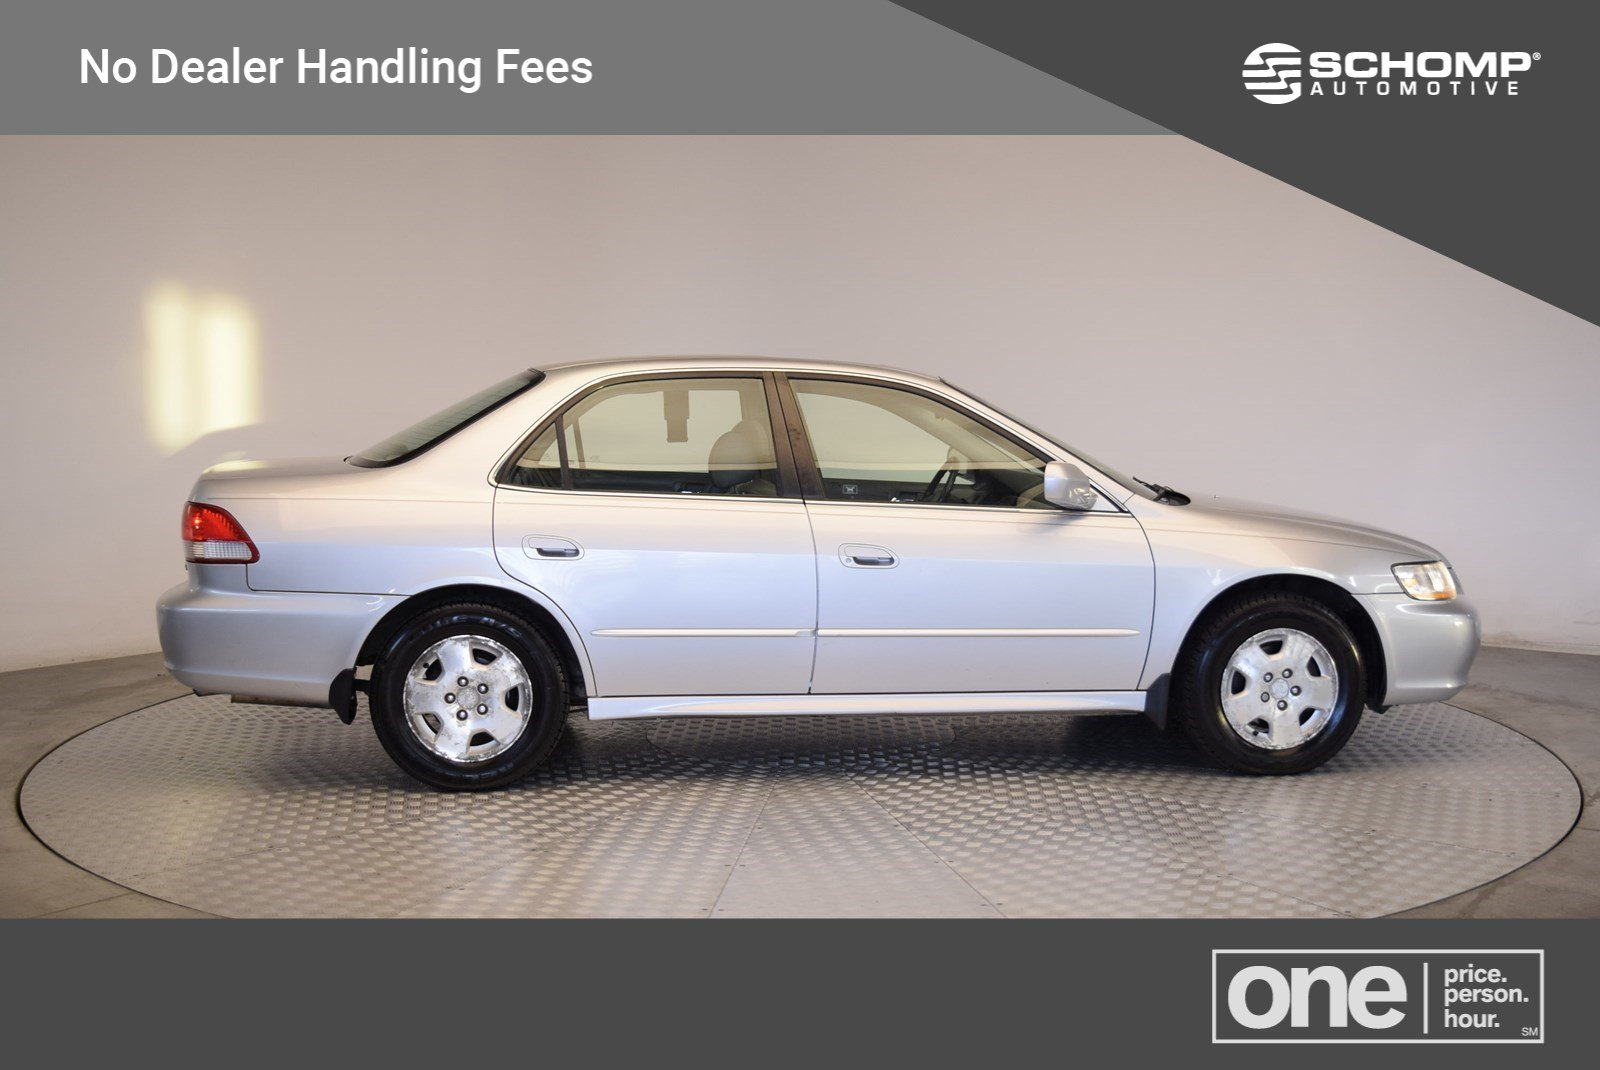 Pre Owned 2002 Honda Accord Sdn EX W/Leather